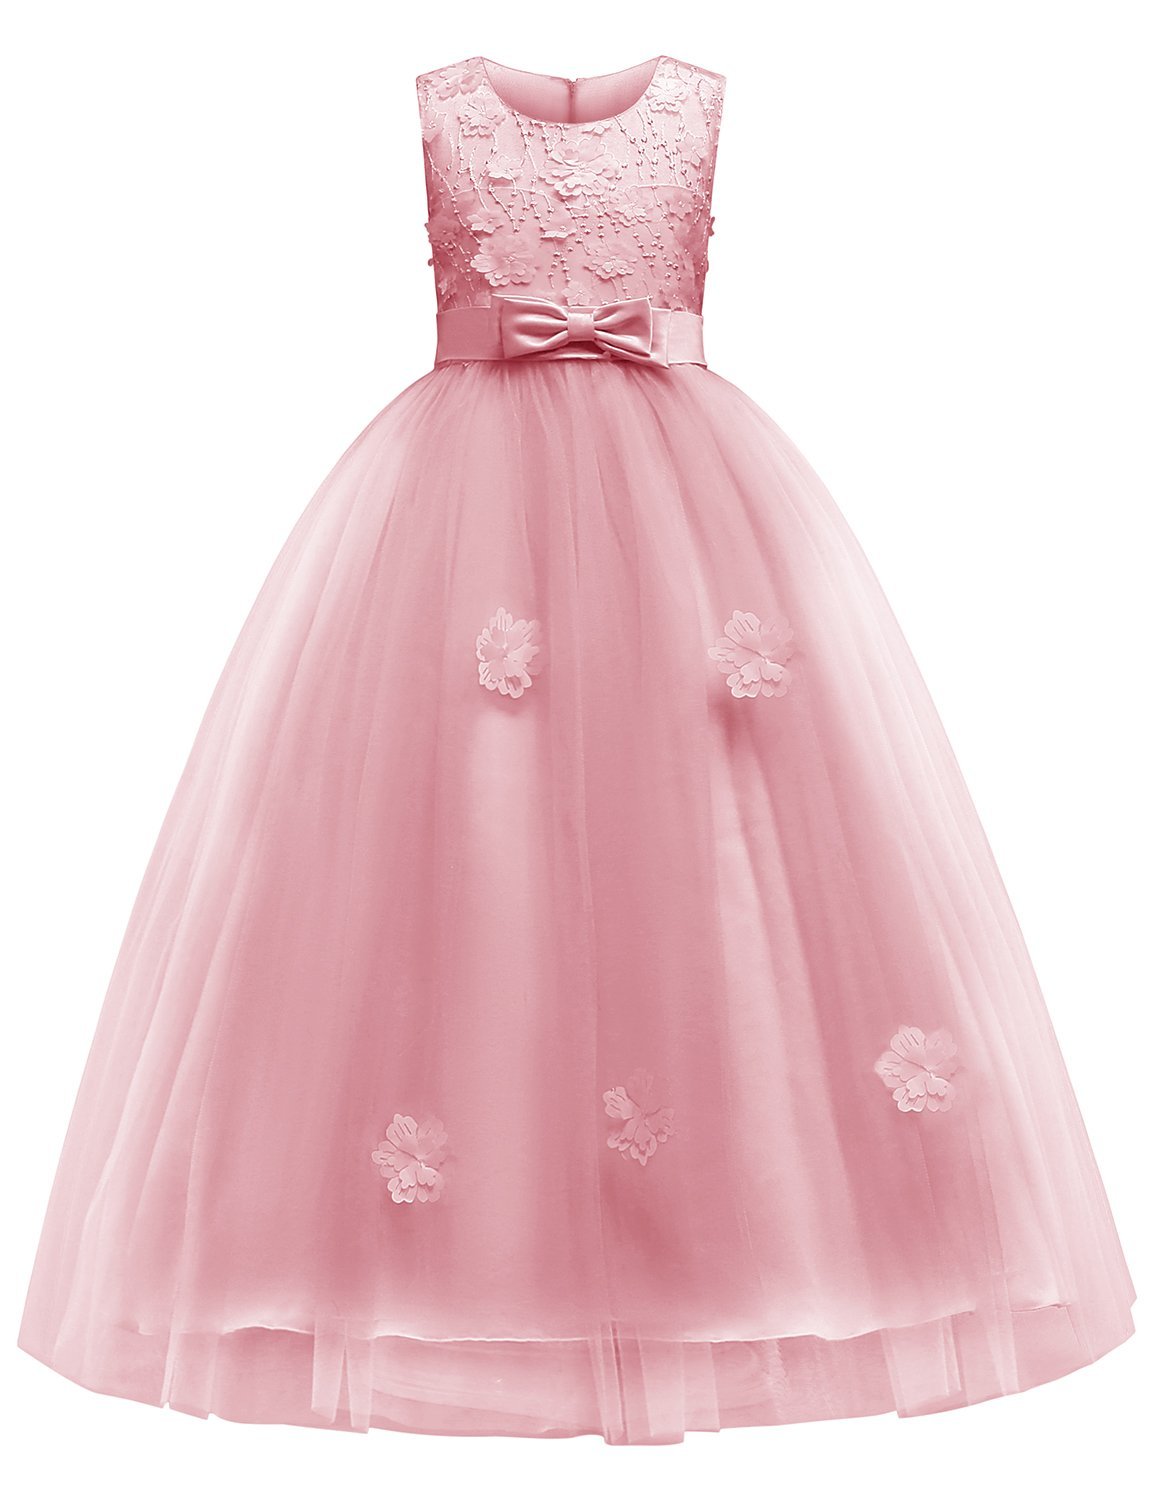 Blevonh Girls Pageant Dress Child Zipper Sleeveless Lace Big A Line Dress Butterfly Knot Summer Floral Print Dress Kids 3D Flower Wedding Party Dresses Size(140) 9-10 Year Pink Dress